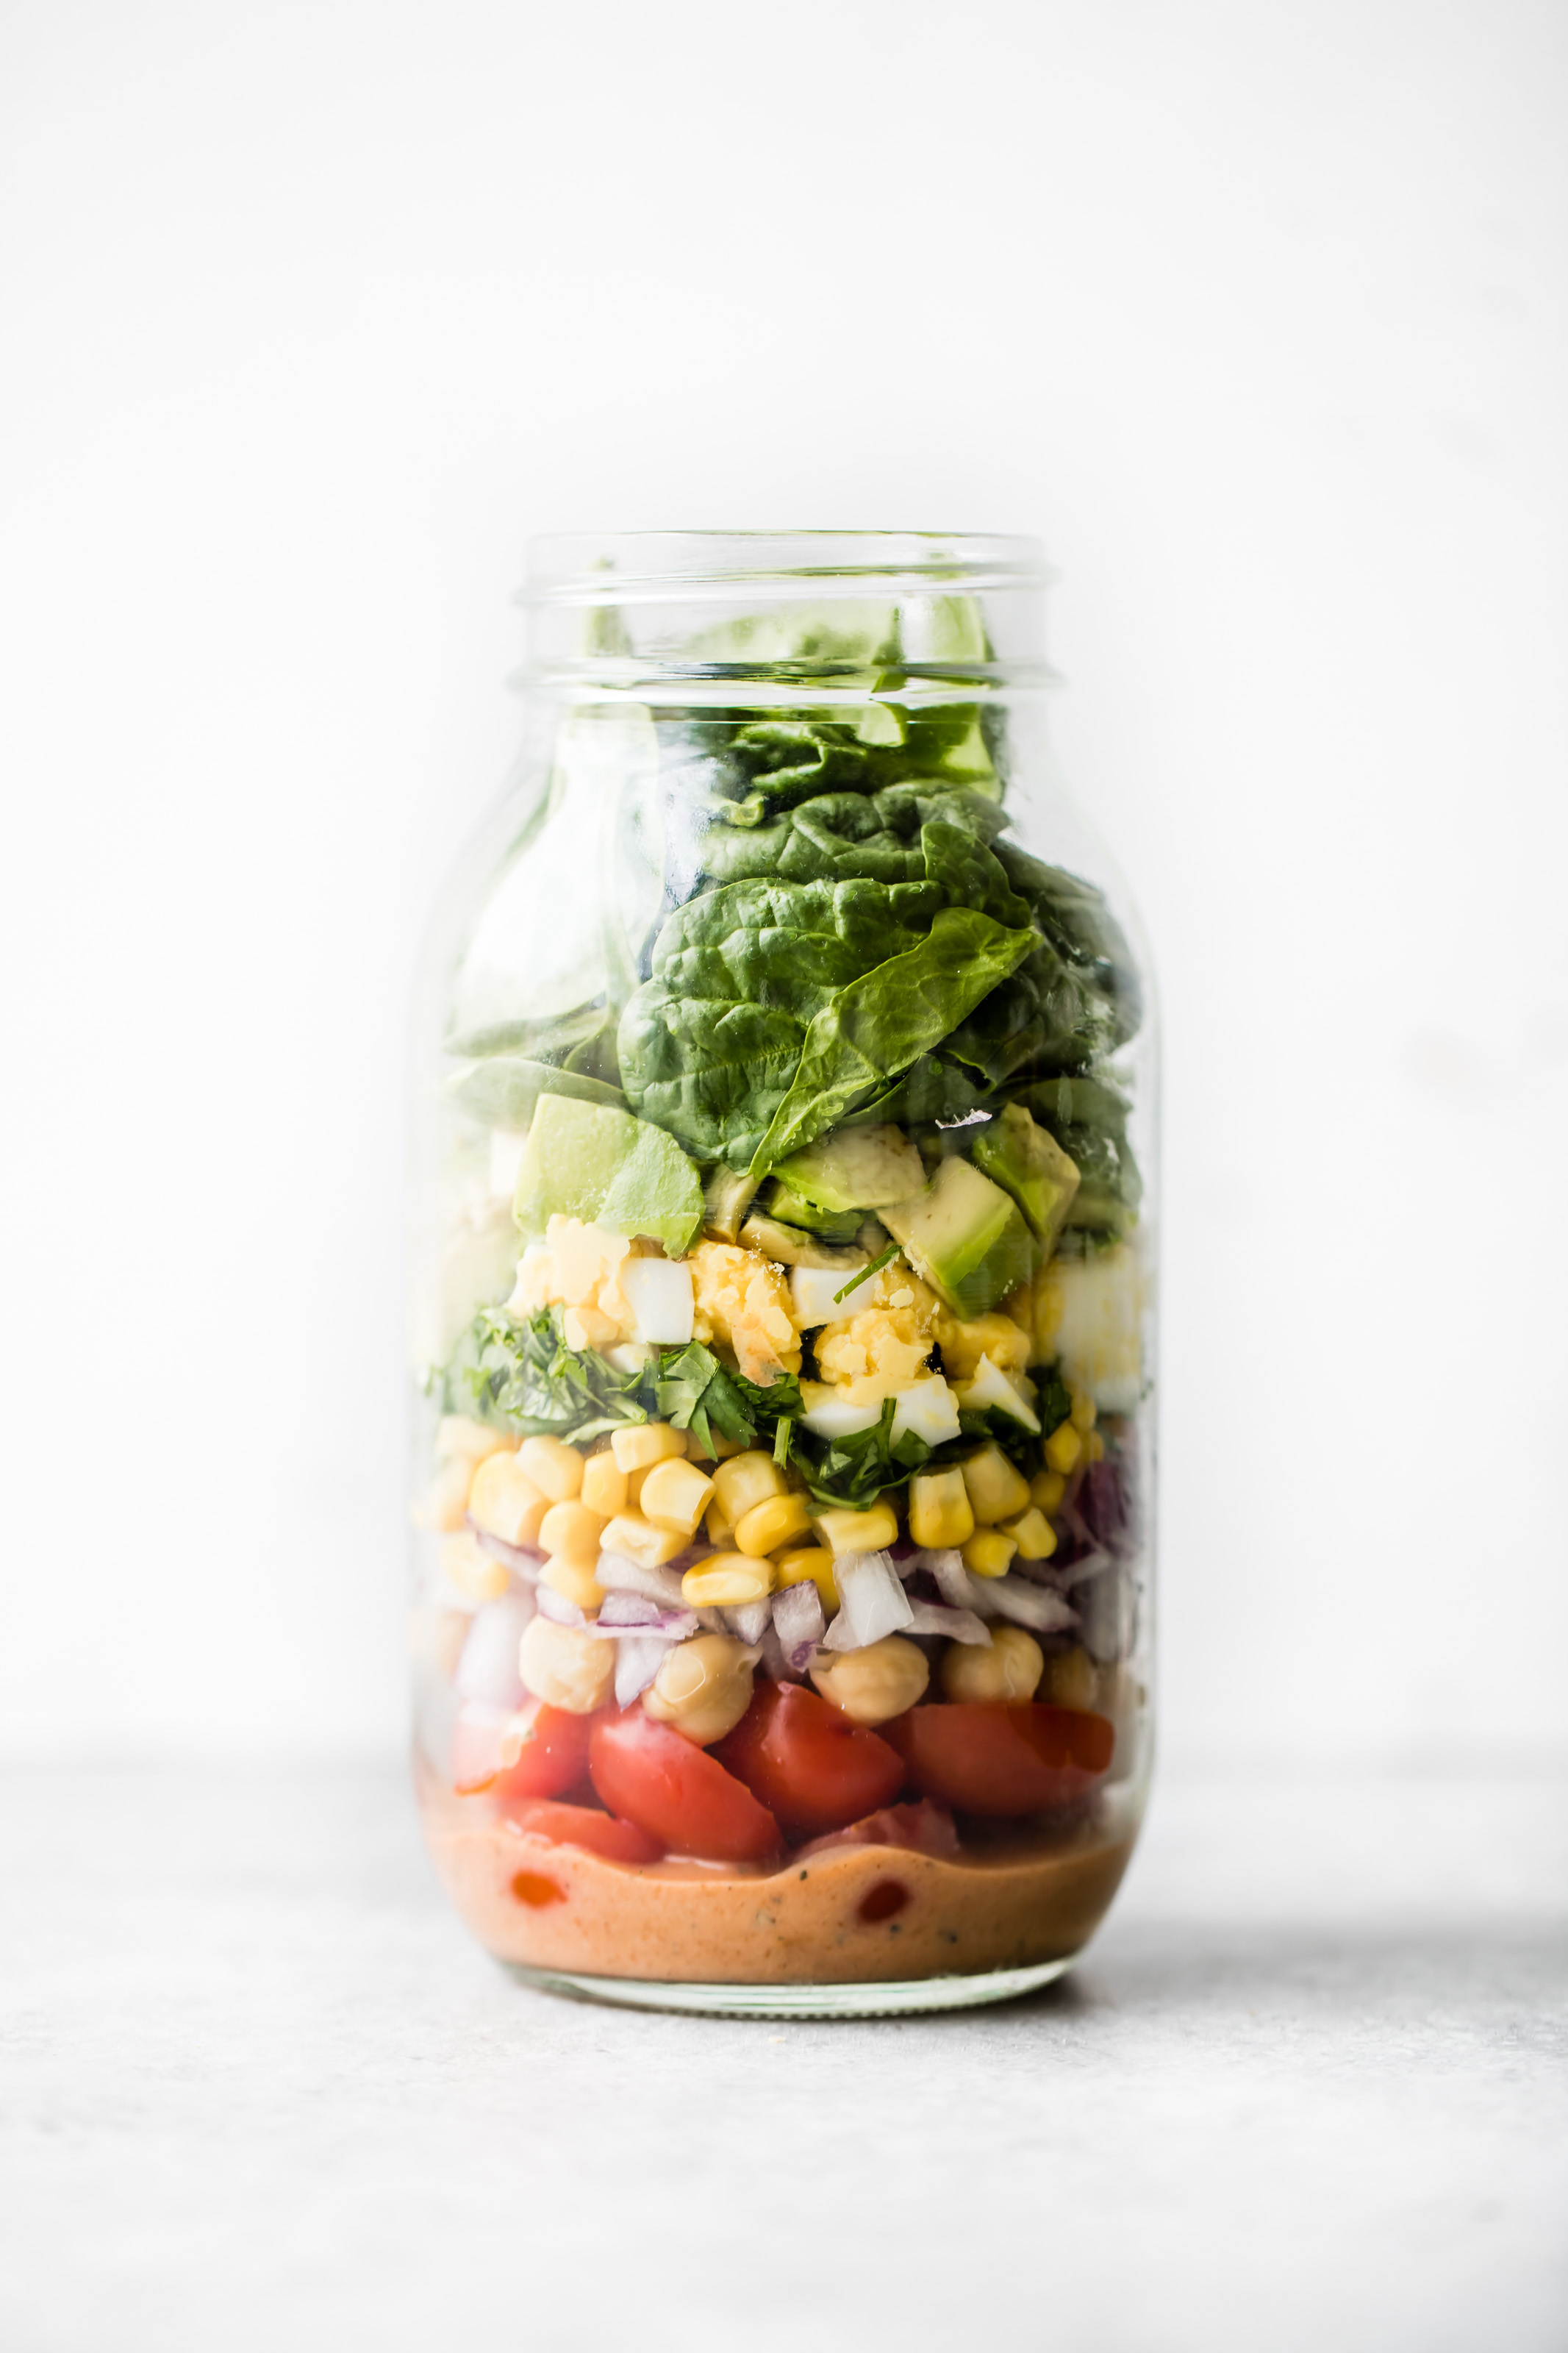 Delicious vegetarian BBQ Chickpea Cobb Salad with tomatoes, sweet corn, chickpeas, herbs and a kick of heat! Dressed with a healthier greek yogurt BBQ ranch dressing. Easy to make and great for meal prep!